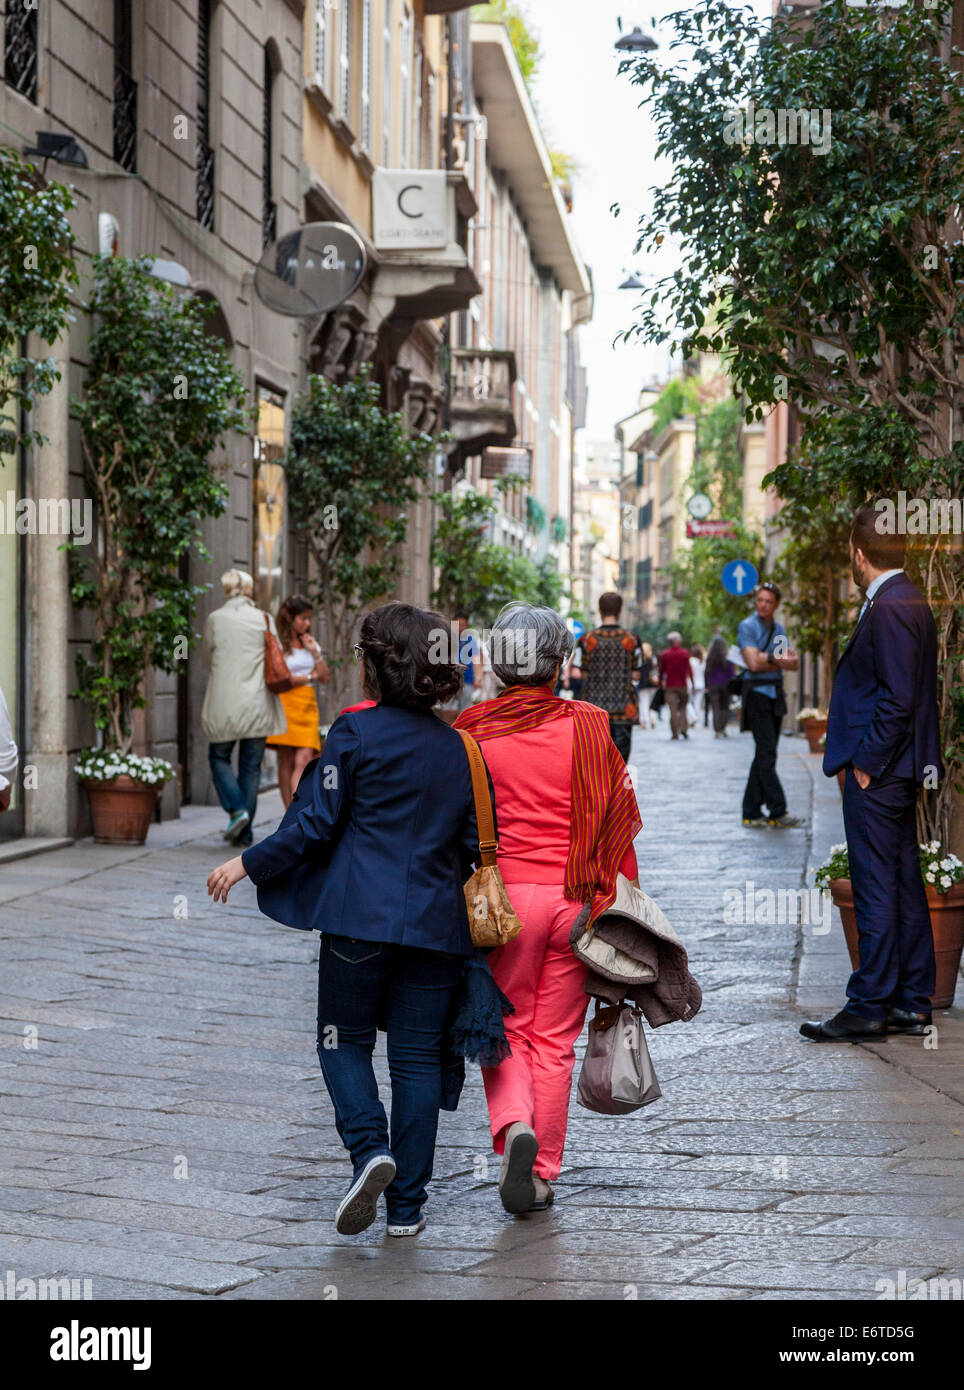 High class shops and shoppers in Milan's Quadrilatero d'Oro - golden shopping rectangle - Via Monte Napoleone, - Stock Image